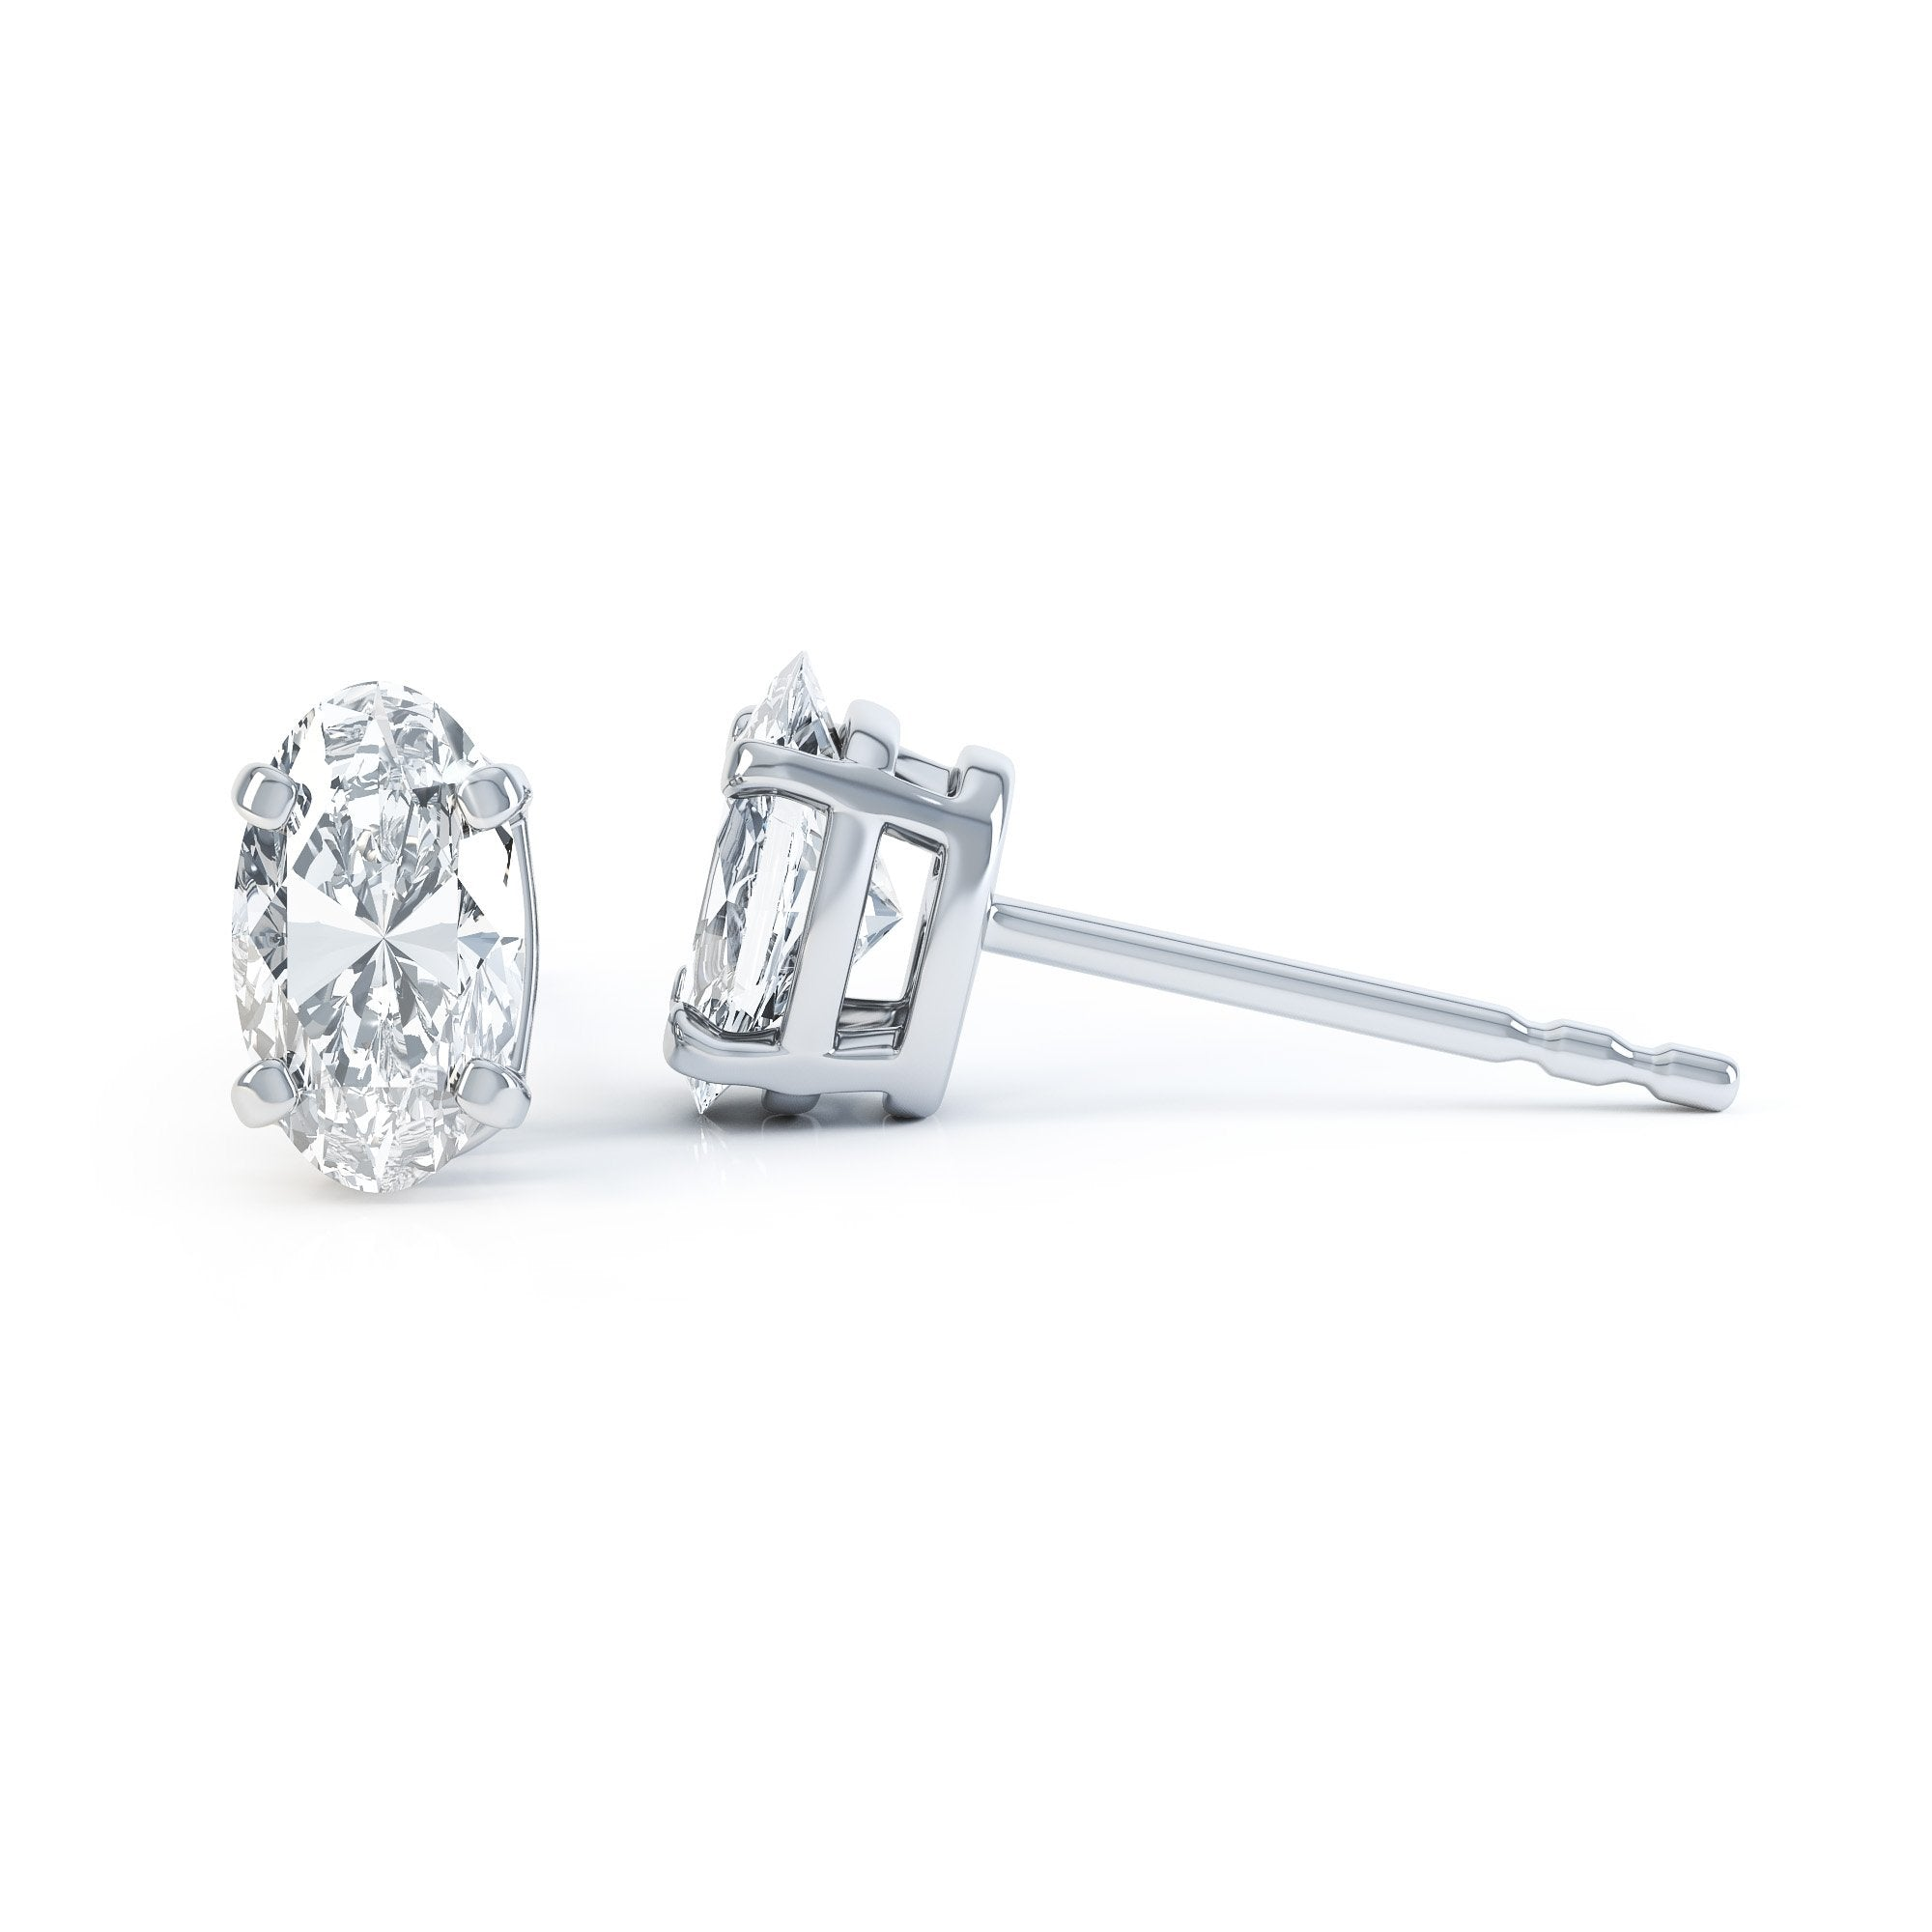 SAVANNAH - Oval Moissanite 950 Platinum Stud Earrings Earrings Lily Arkwright